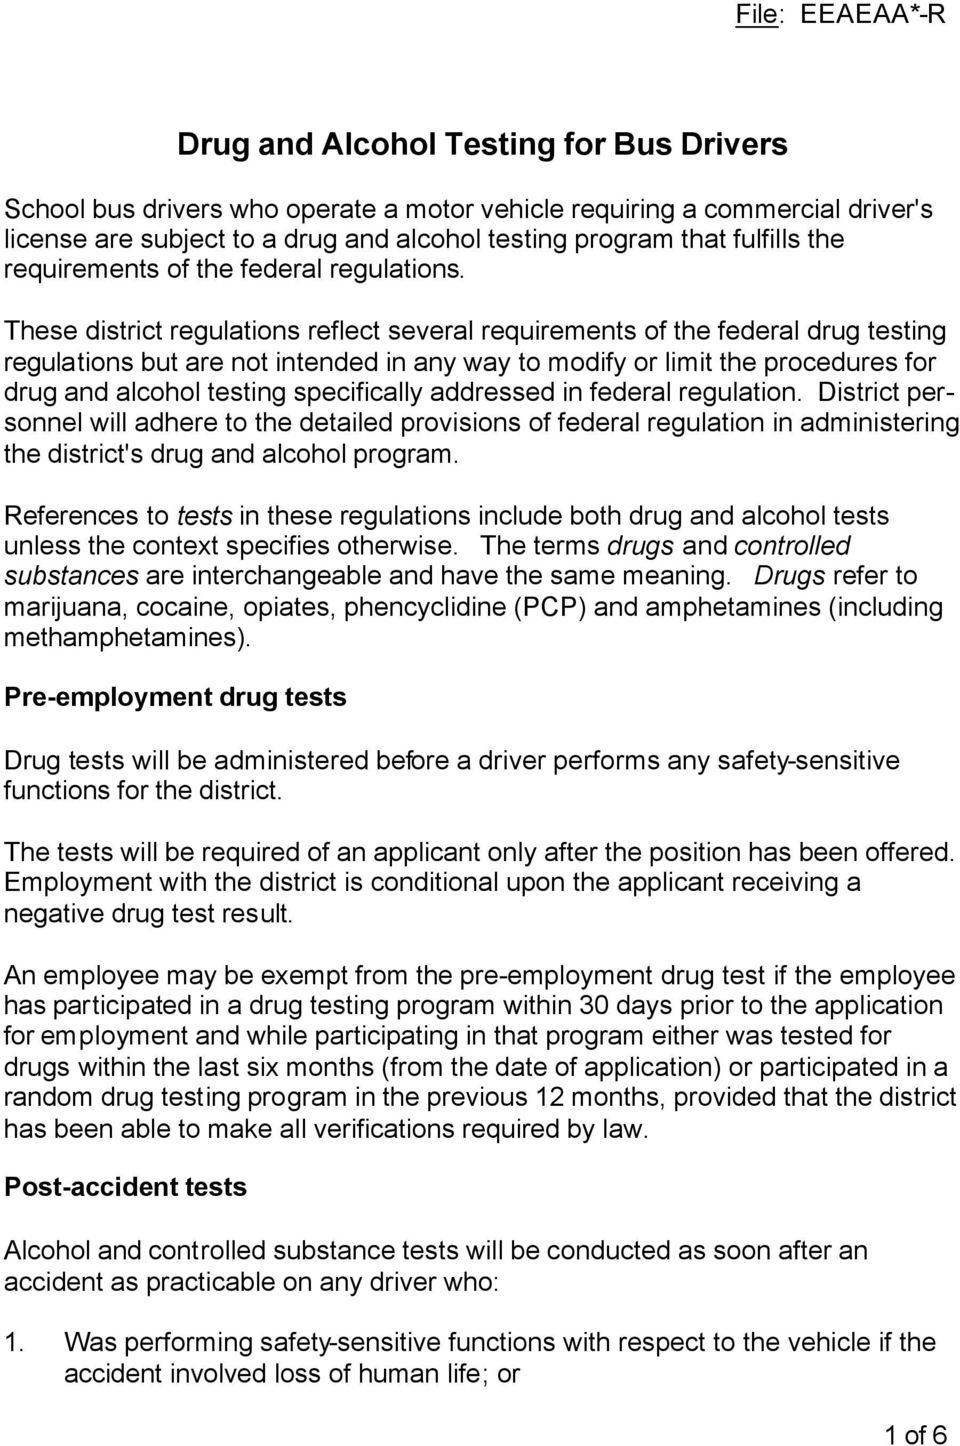 These district regulations reflect several requirements of the federal drug testing regulations but are not intended in any way to modify or limit the procedures for drug and alcohol testing